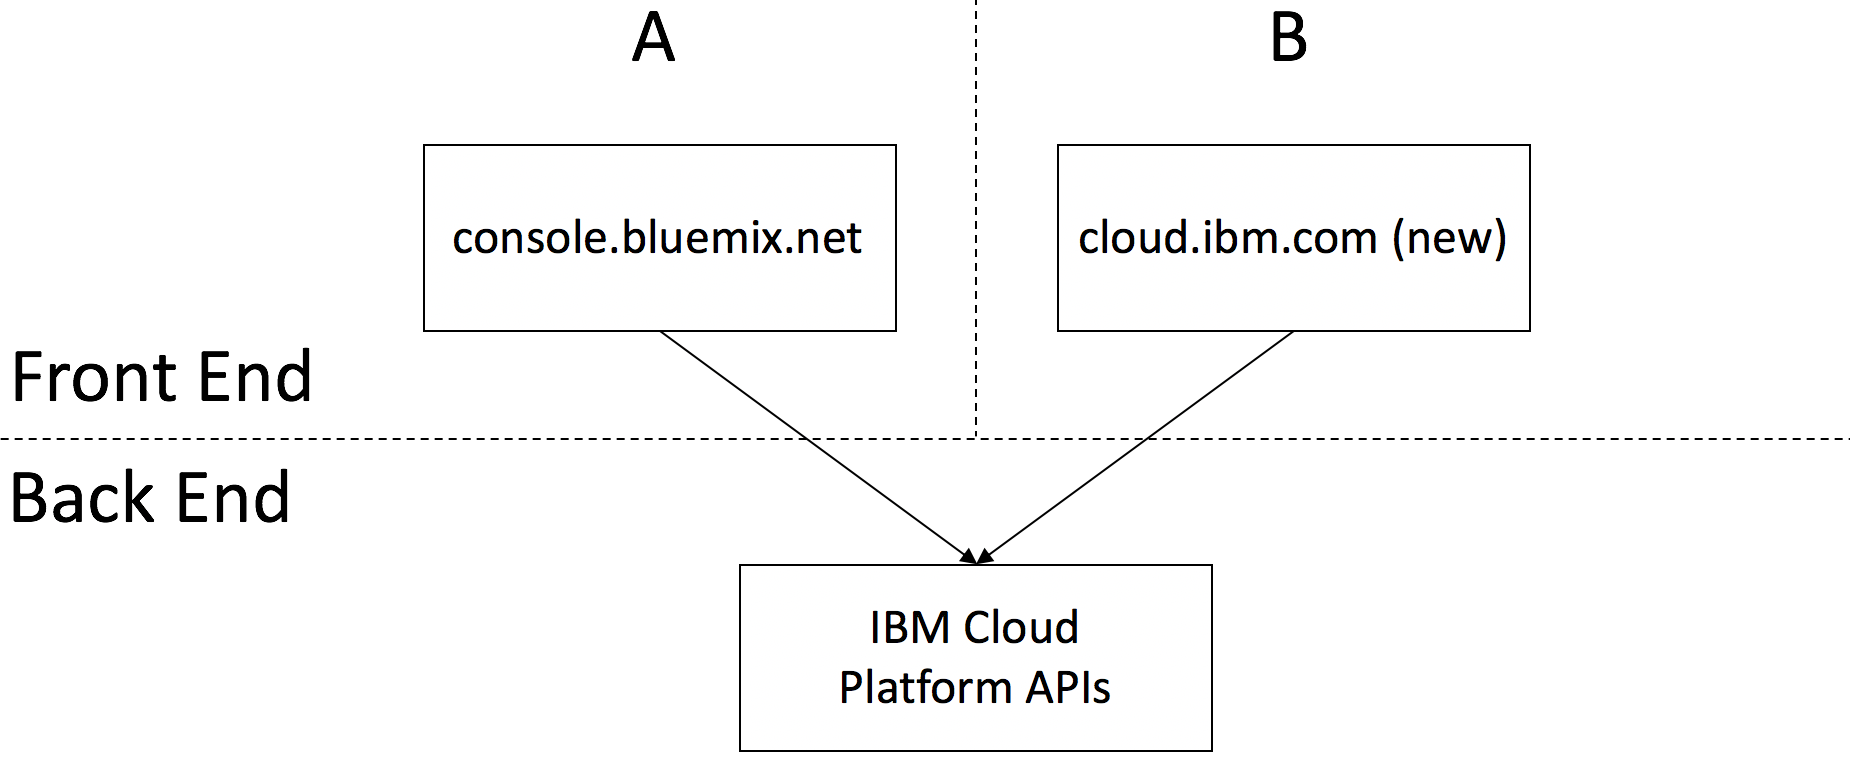 Rollout Architecture for cloud.ibm.com